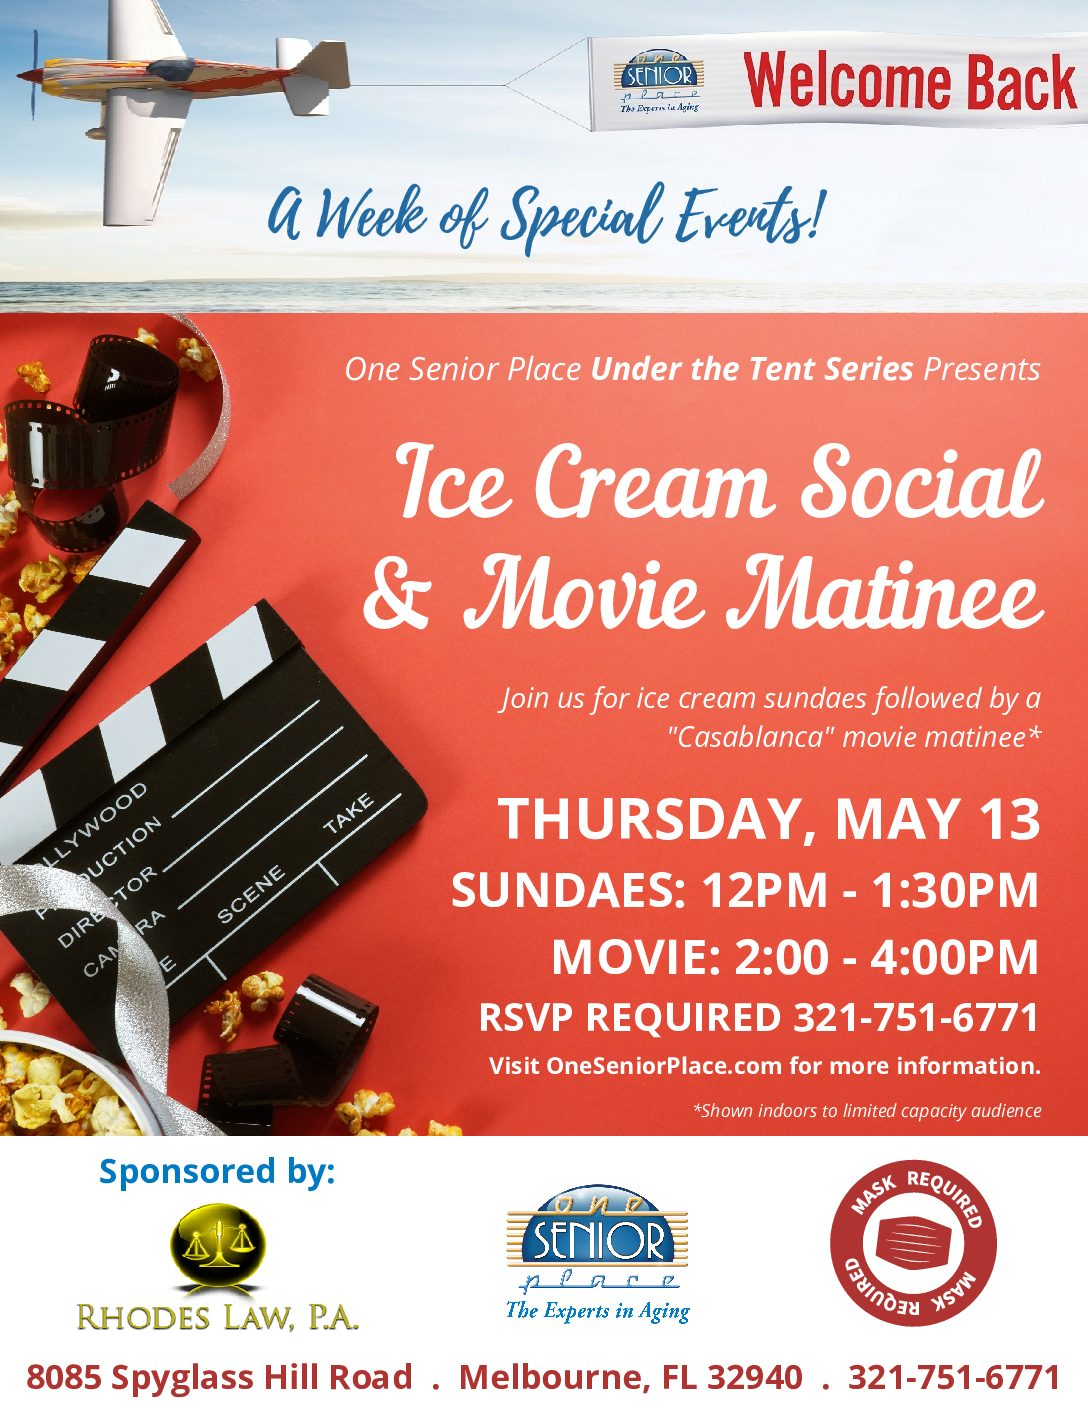 Ice Cream Social hosted by Rhodes Law. P.A., Under The Tent Series